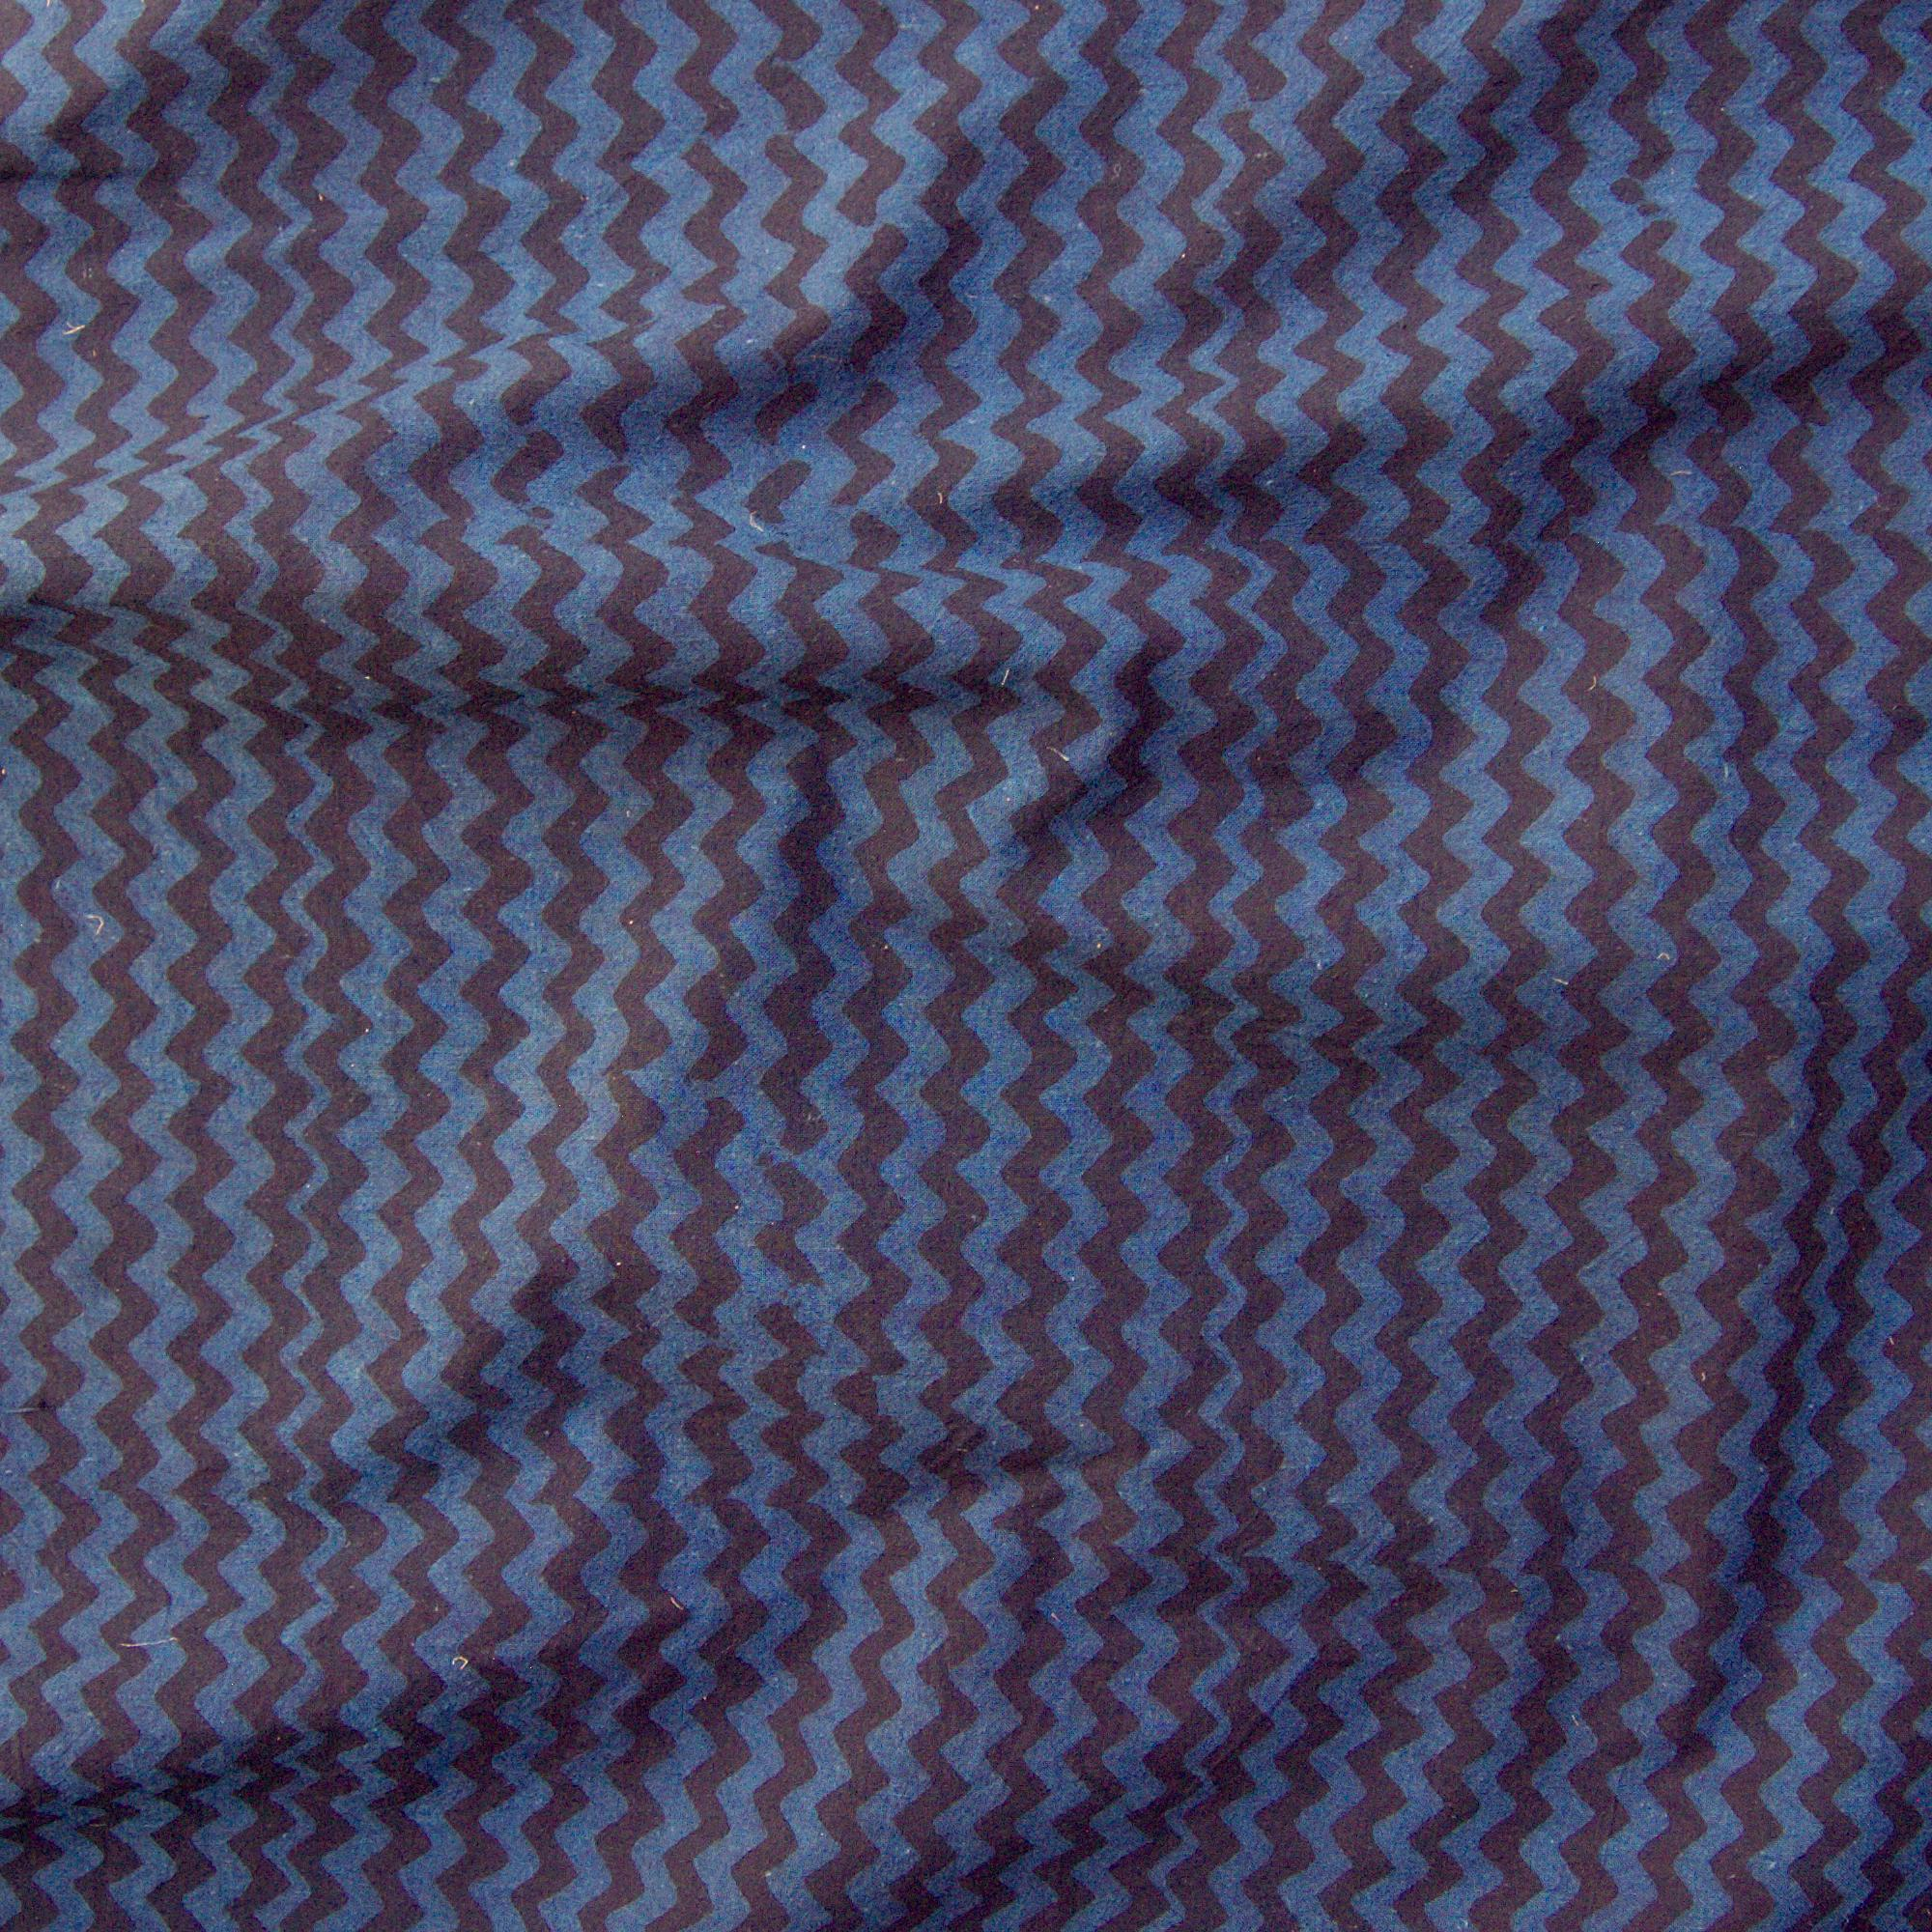 100% Block-Printed Cotton Fabric From India- Ajrak - Indigo Black Zig Zag Print - Contrast